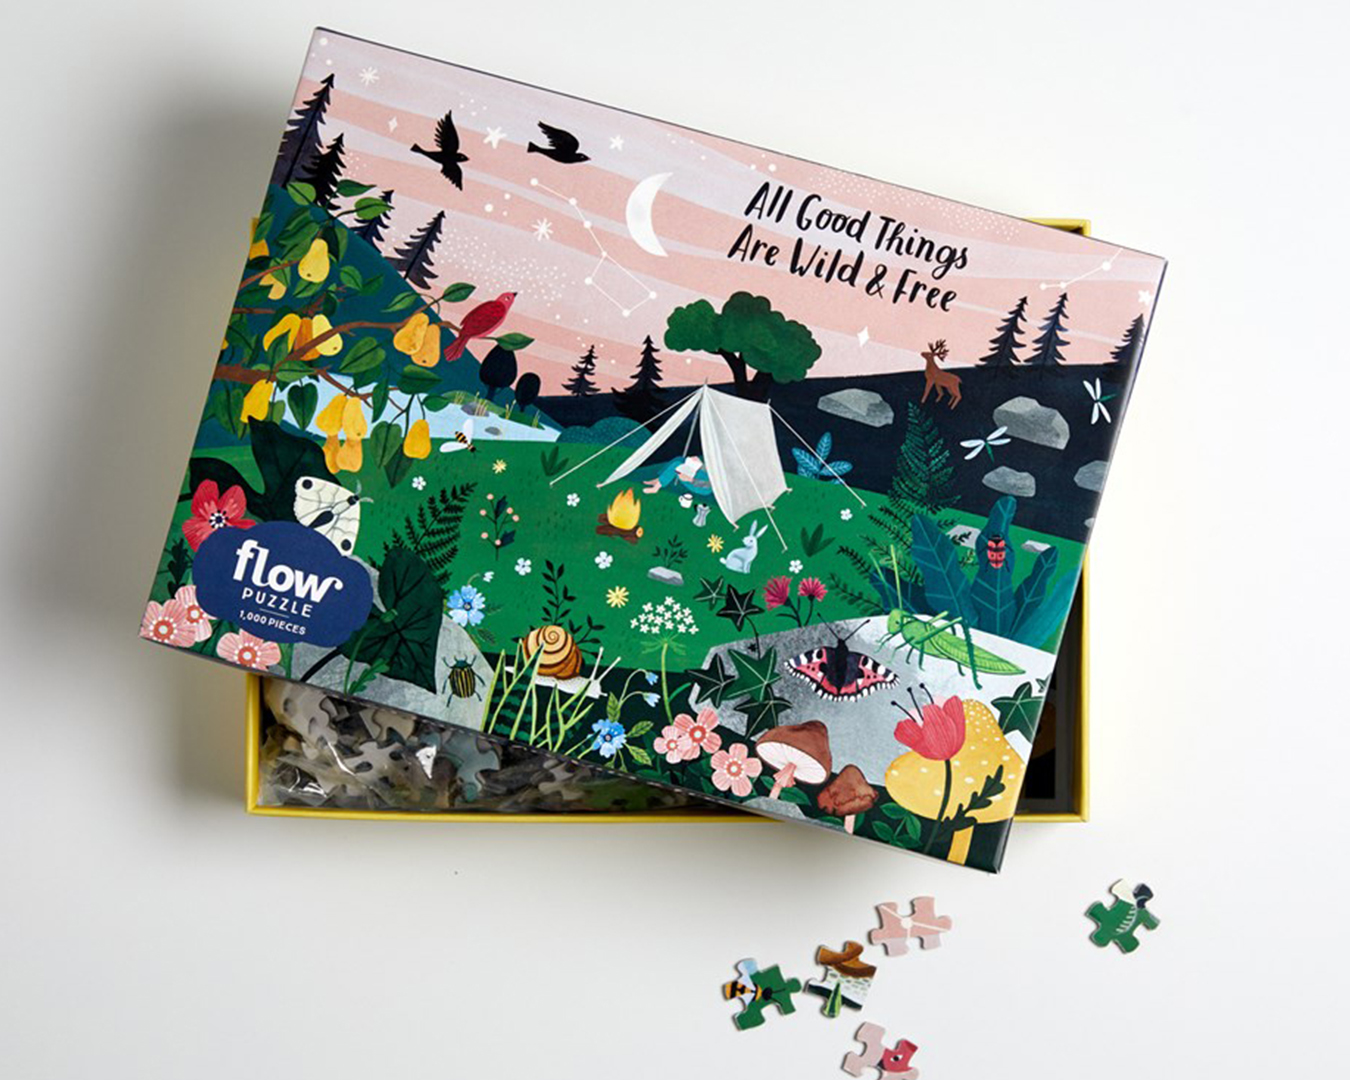 Puzzle depicting a campsite under a starry night sky on a box.